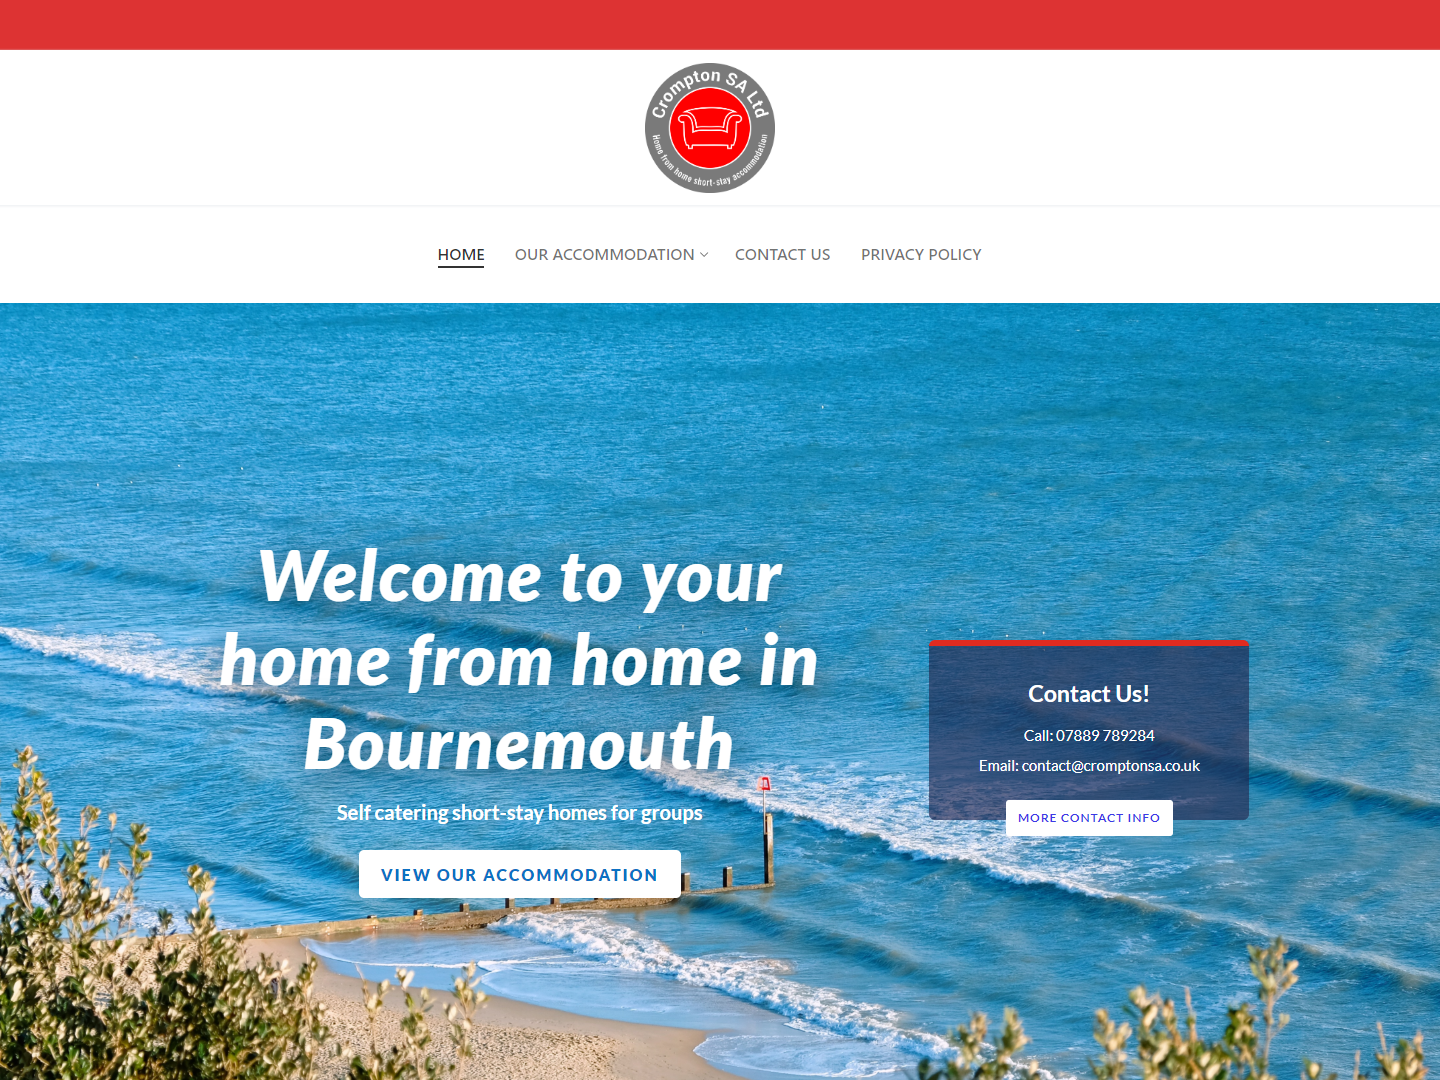 Crompton SA - Serviced Accommodation in Bournemouth api logo javascript html css ux  ui photoshop cloudflare wordpress website design bournemouth serviced accommodation